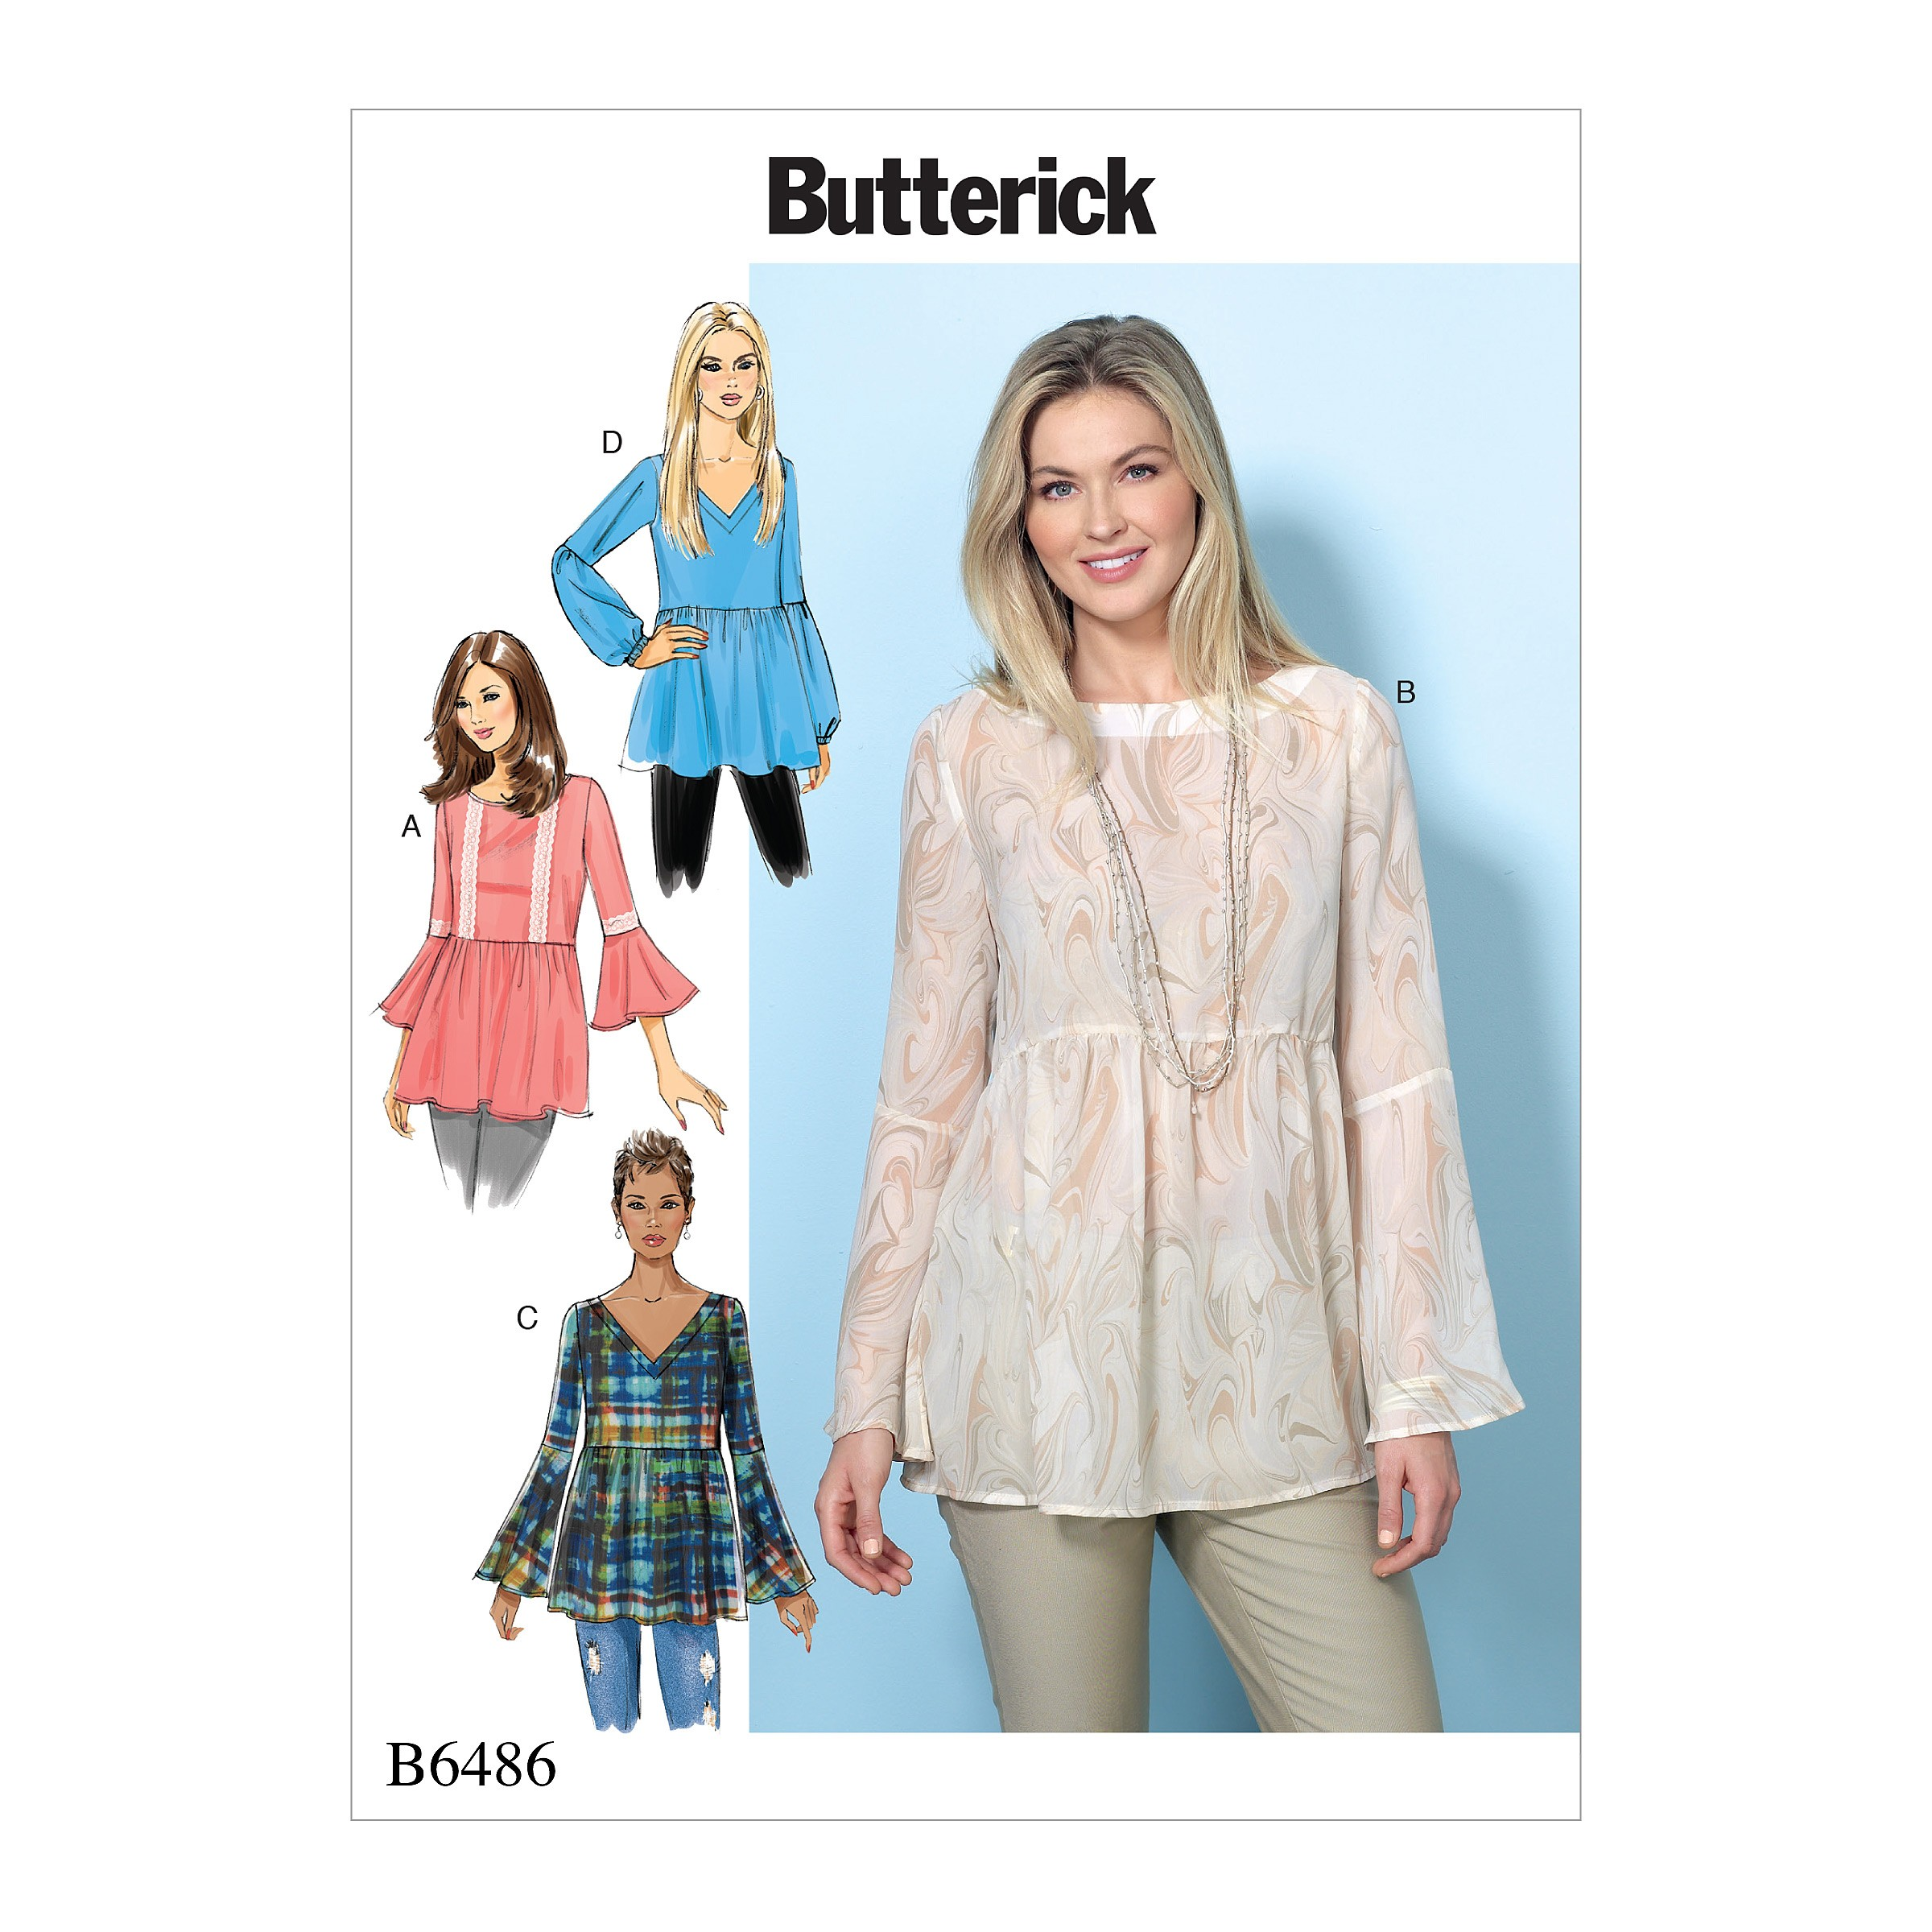 Butterick Sewing Pattern 6486 Misses' Loose Fitting Gathered Waist Tops